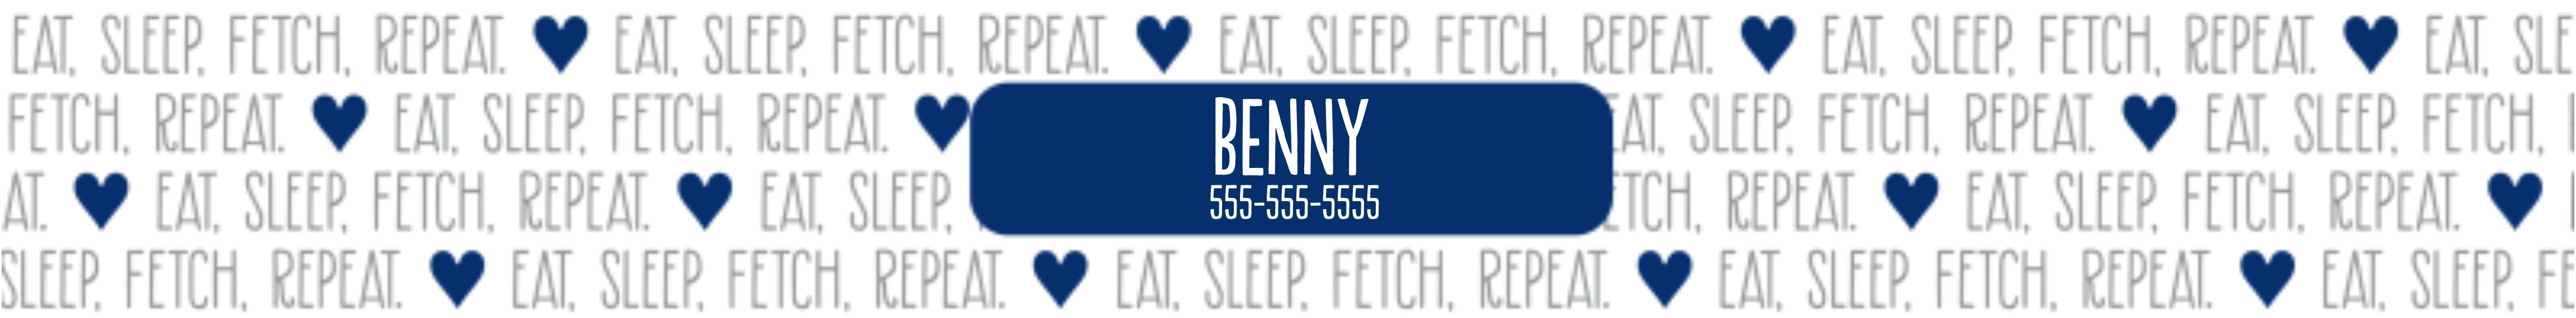 Featured Large Pet Collar, Gift -Eat Sleep Fetch Repeat